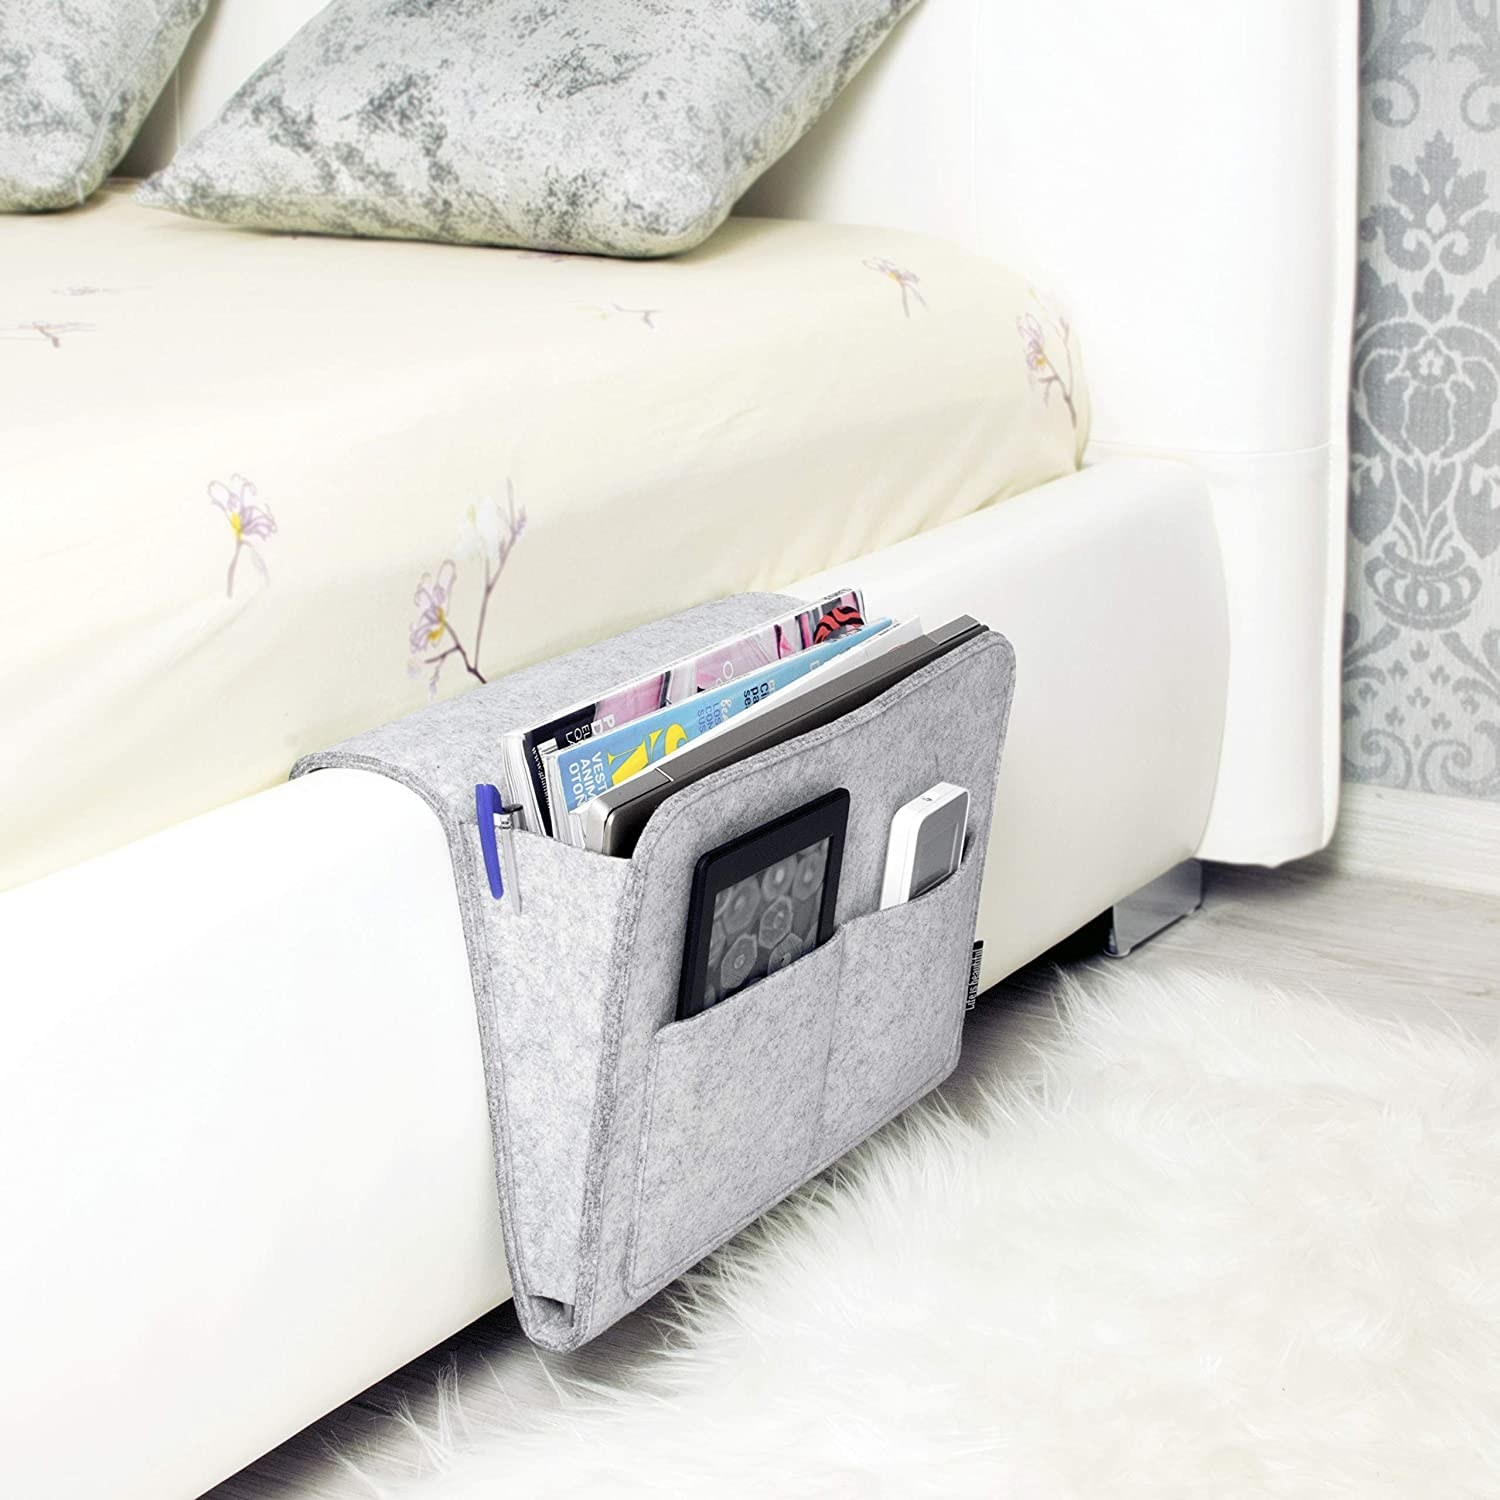 the bedside caddy in gray